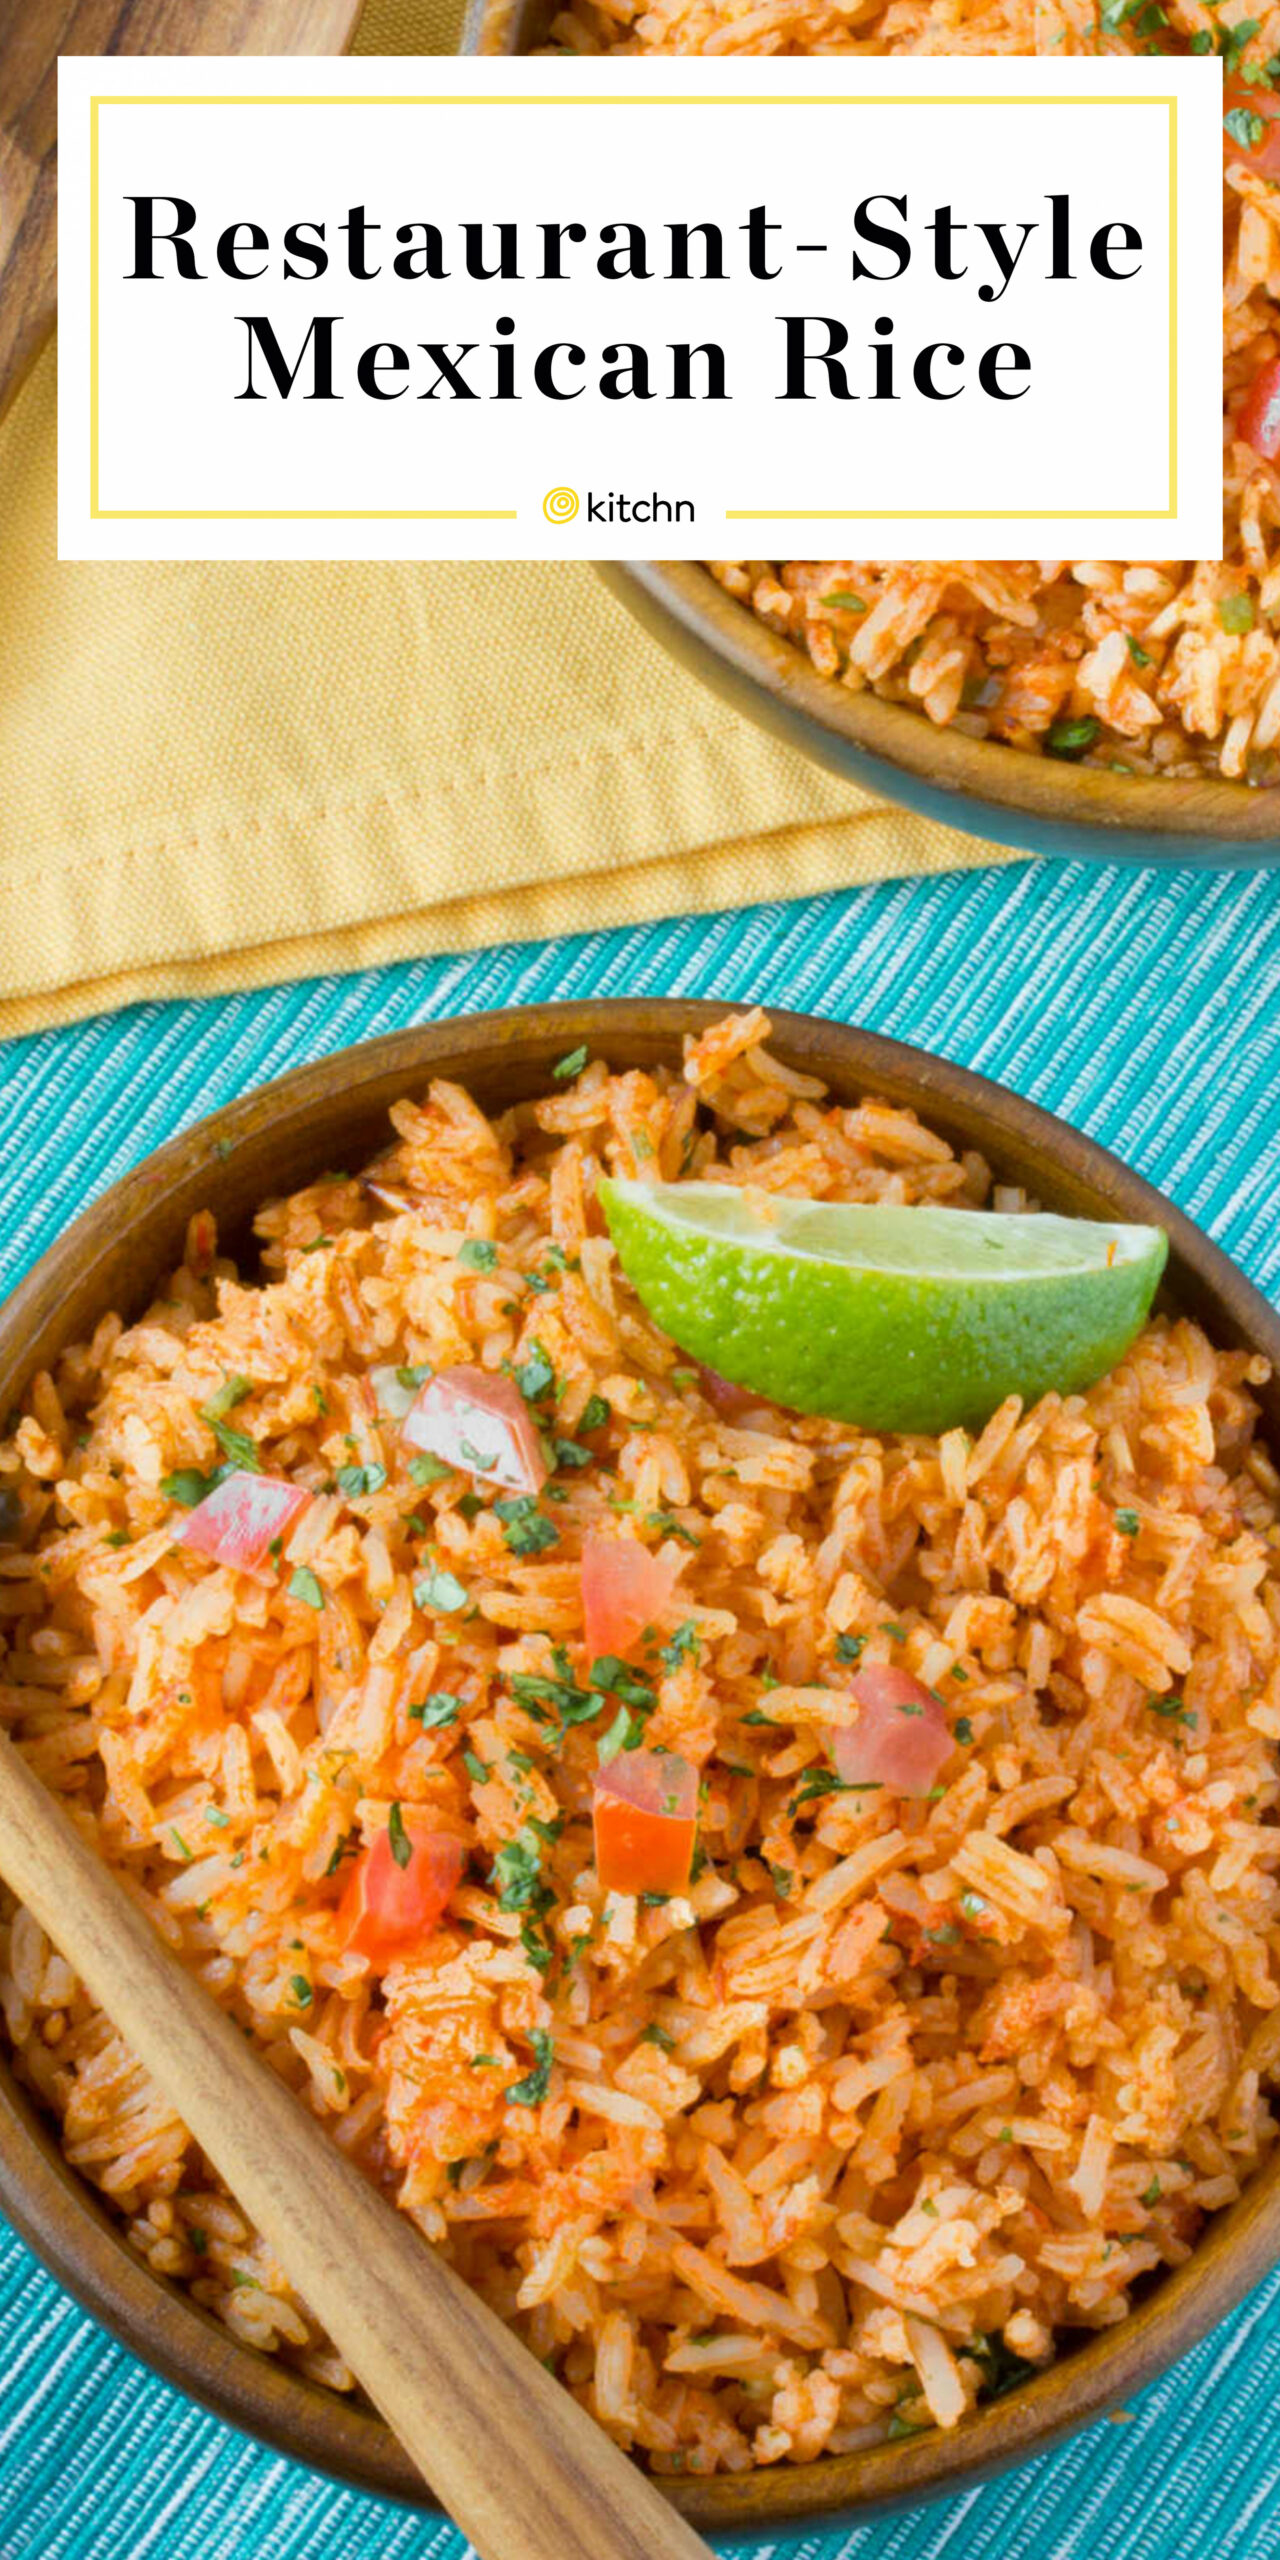 Restaurant-Style Mexican Rice - food recipes rice